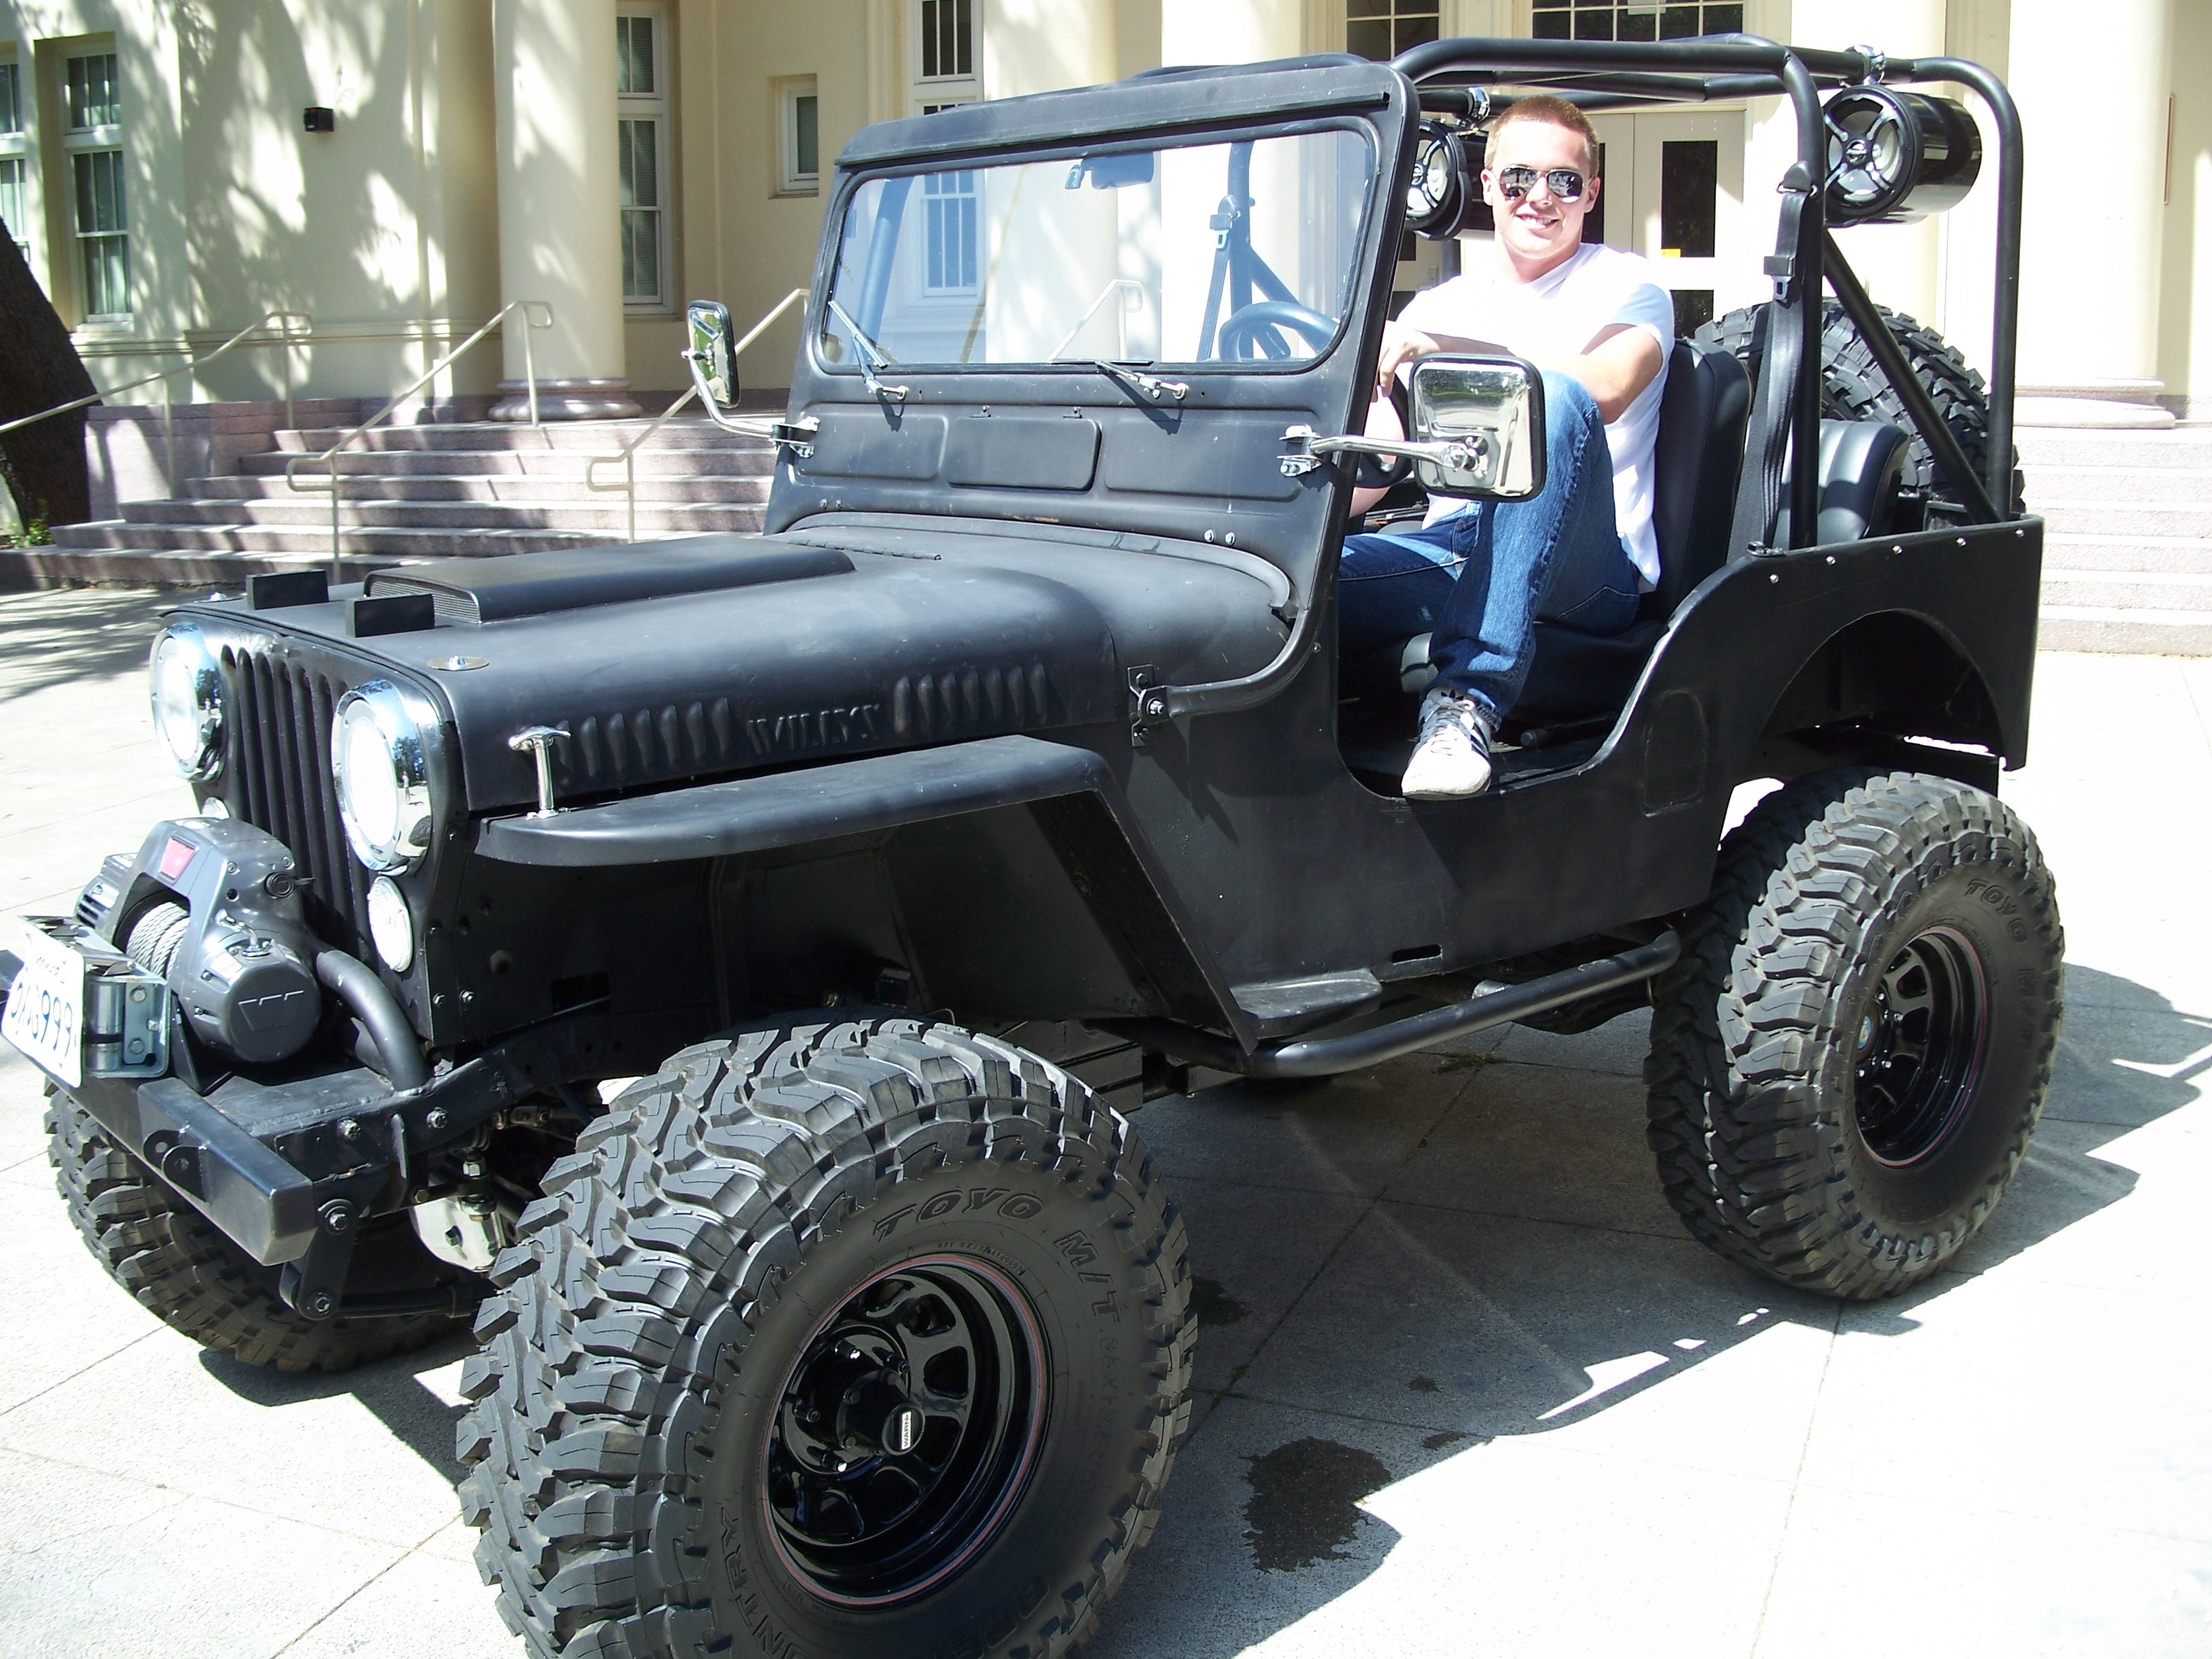 TerryCrews's 1947 Jeep CJ2A